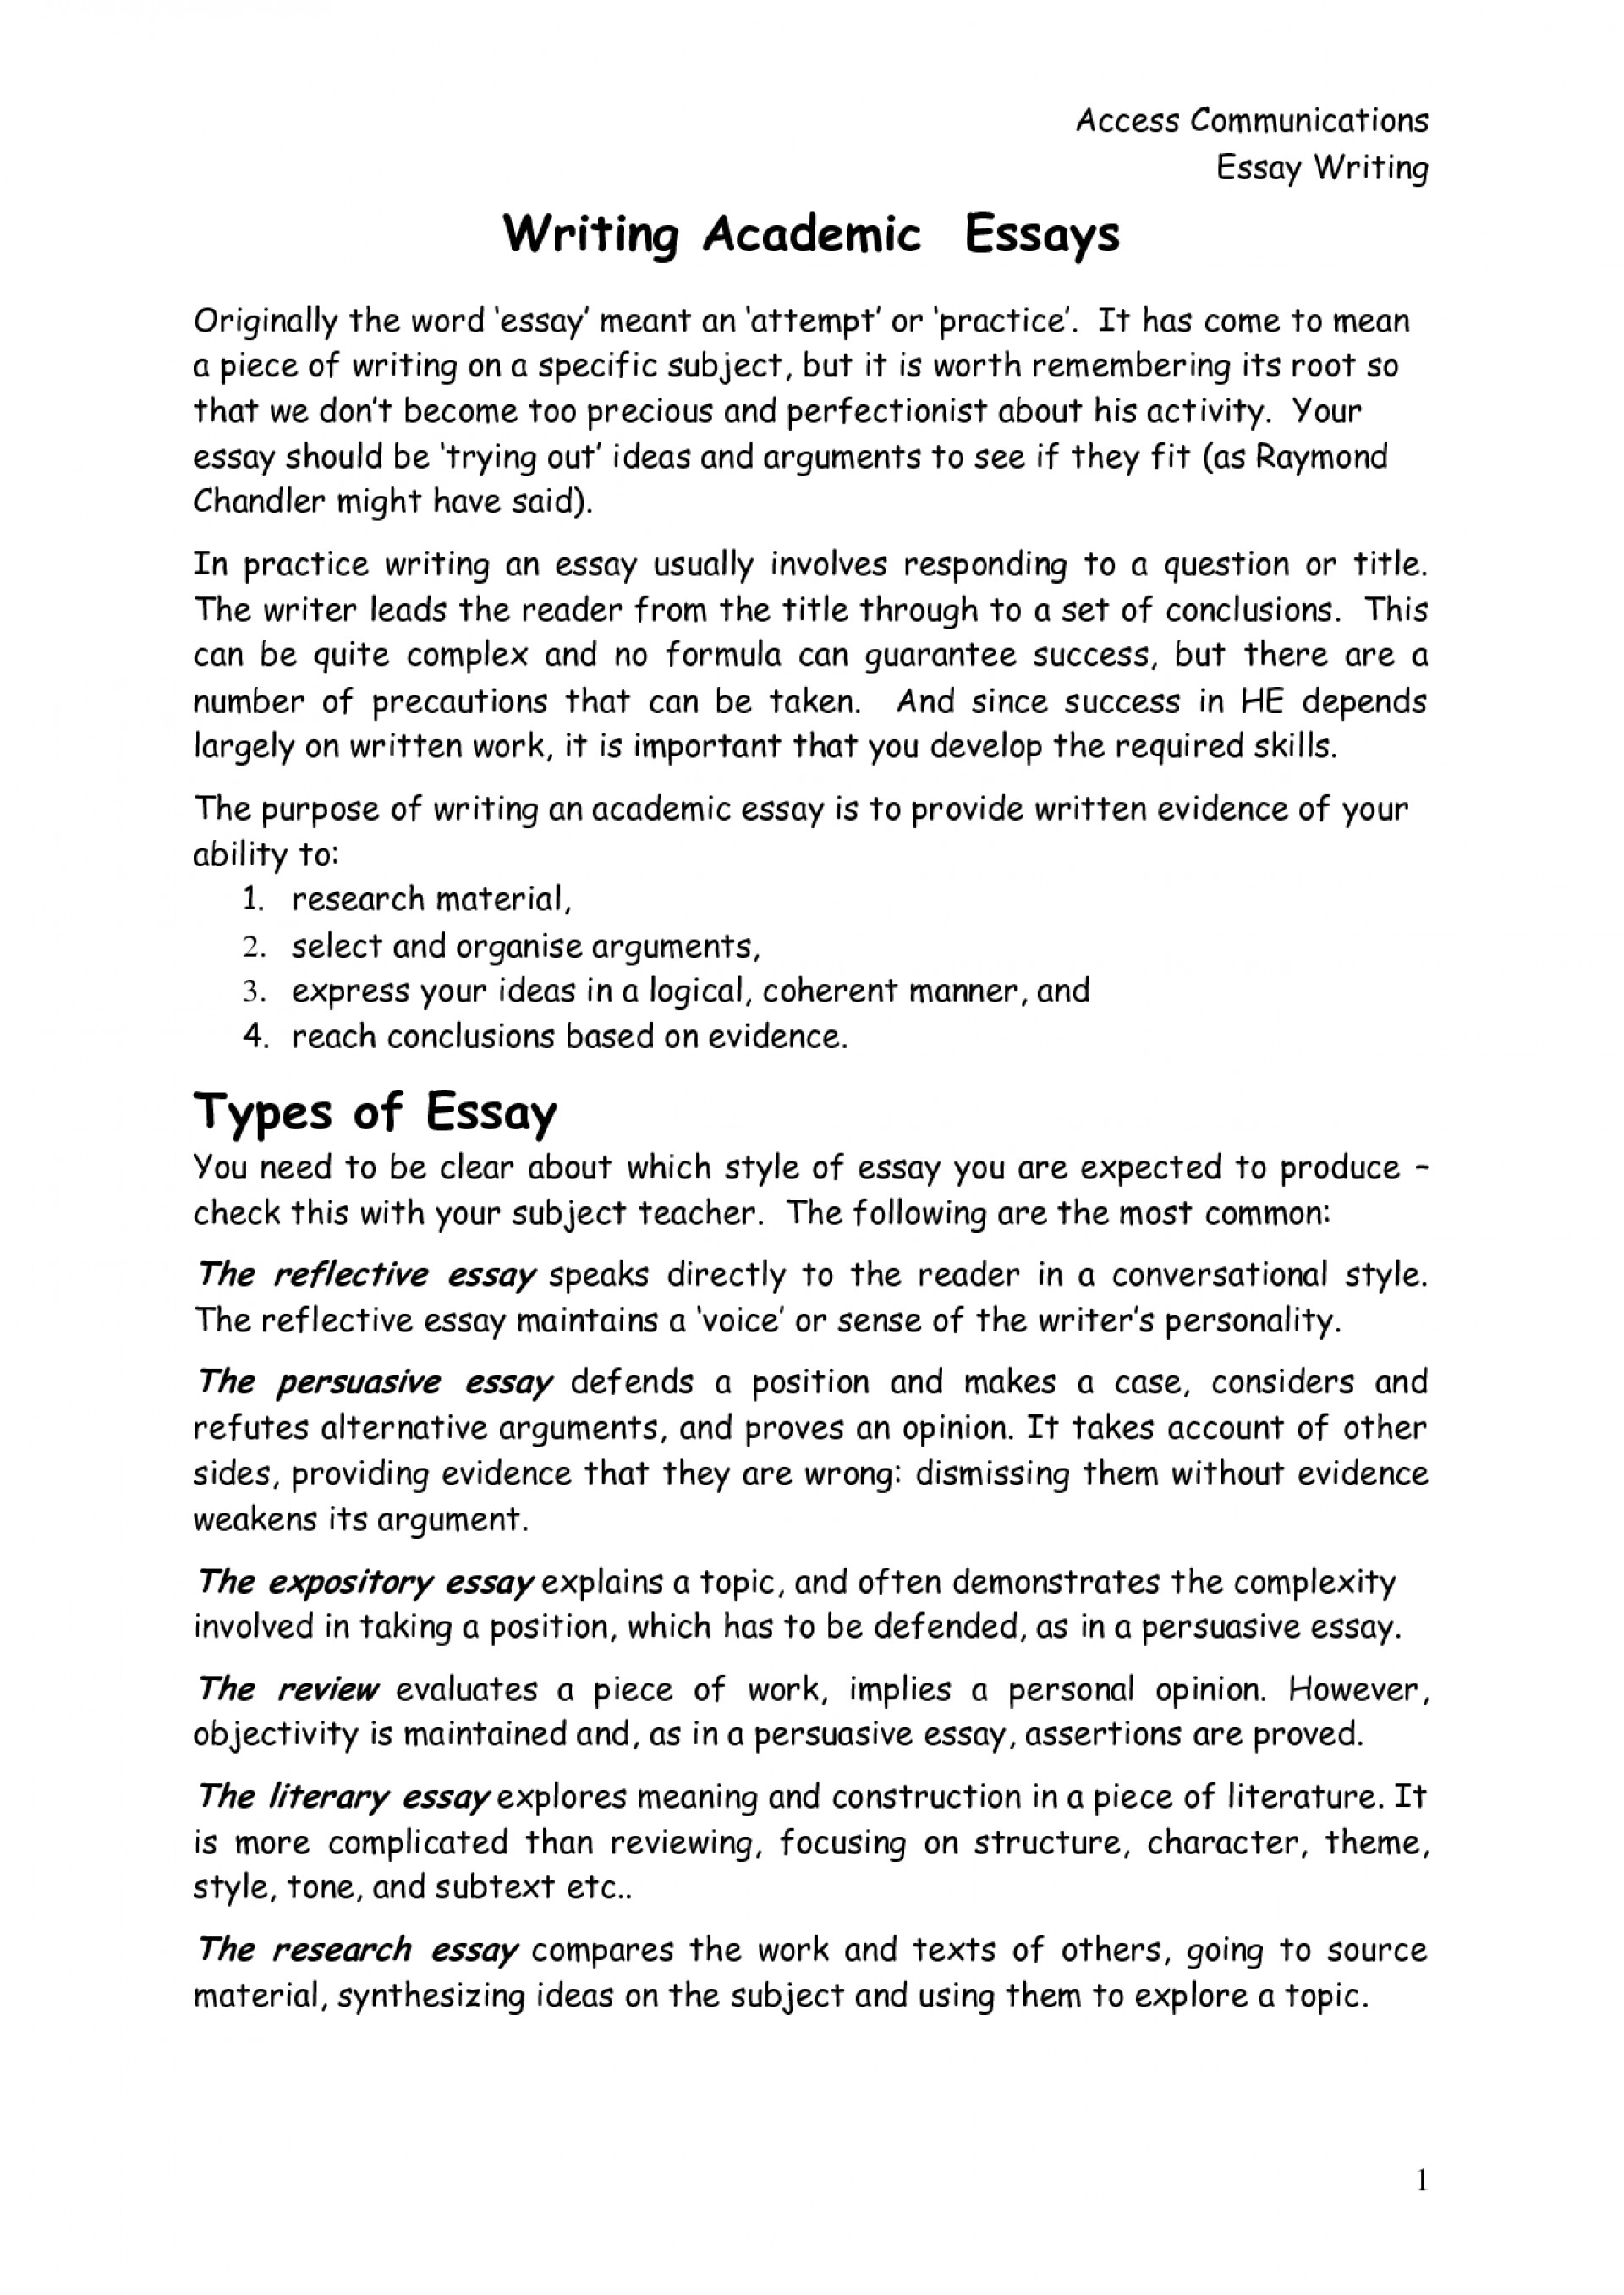 001 Essay Example Introduction Examples University Write An Unforgettable Nursing 1920